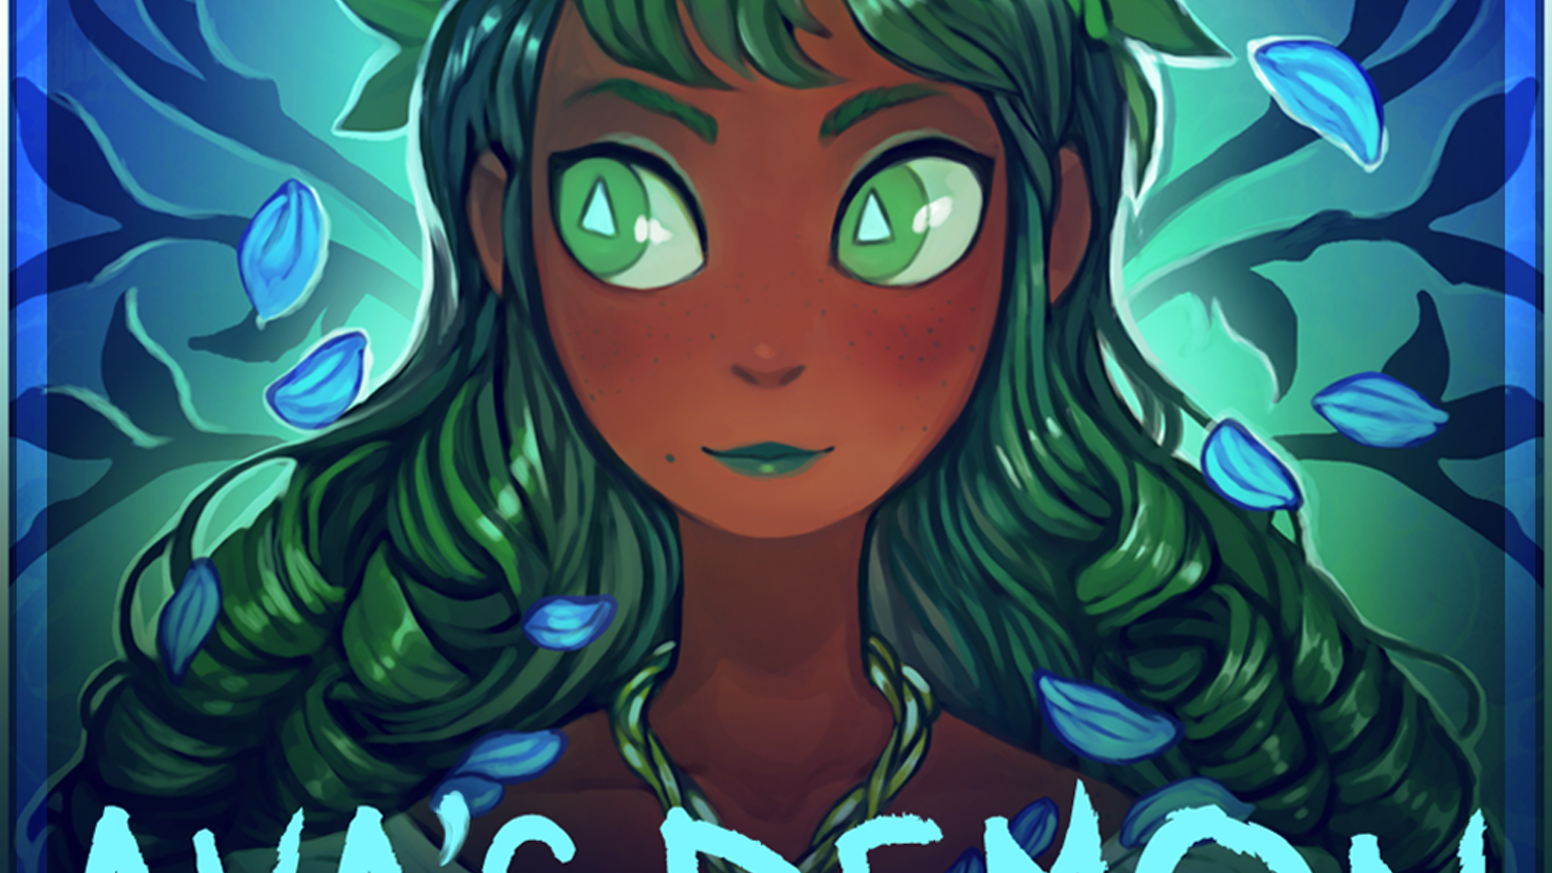 Ava's Demon is a webcomic about Ava and the demon haunting her. Help me continue her adventure by funding its second book!